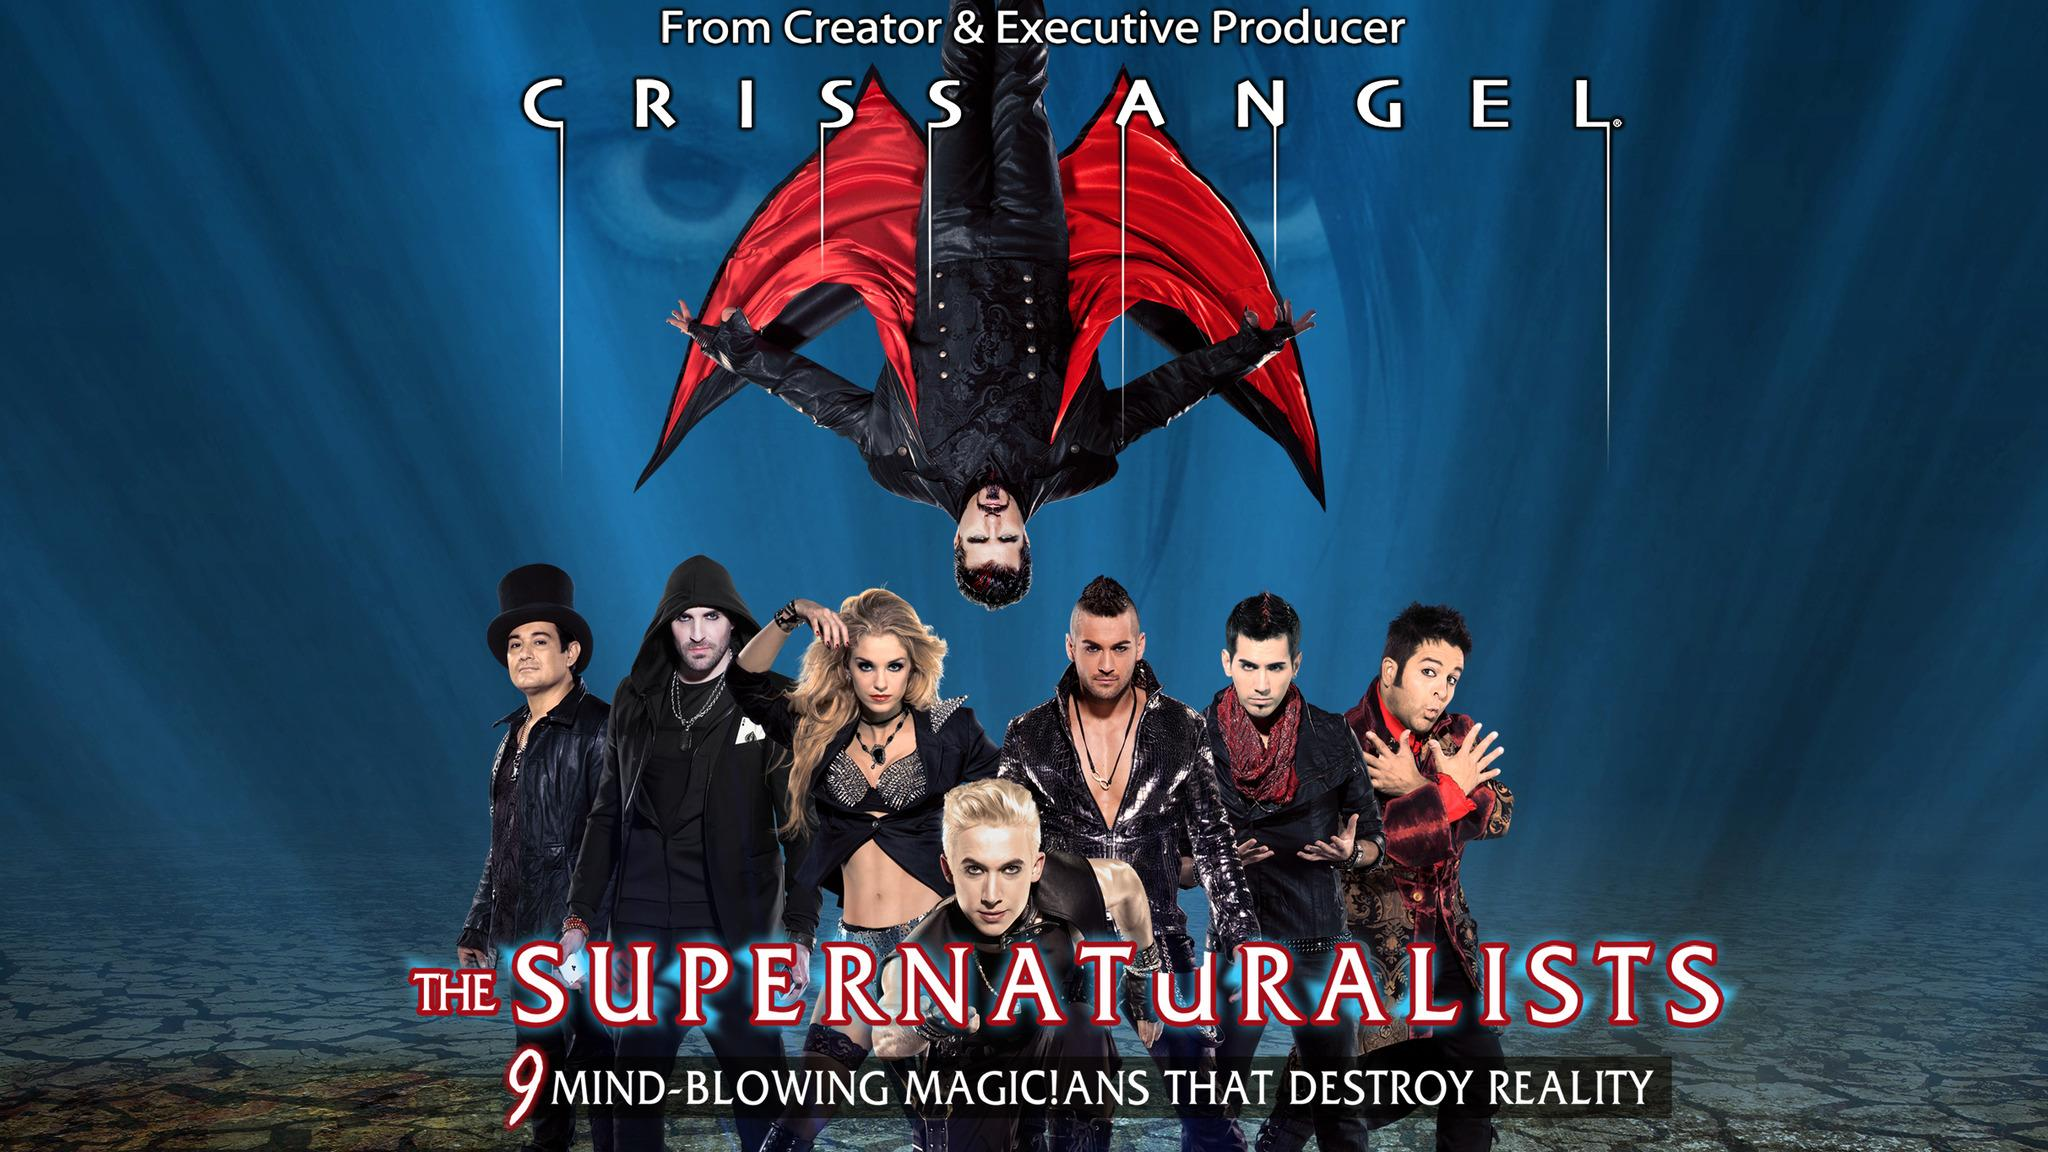 Criss Angel starring in The Supernaturalists